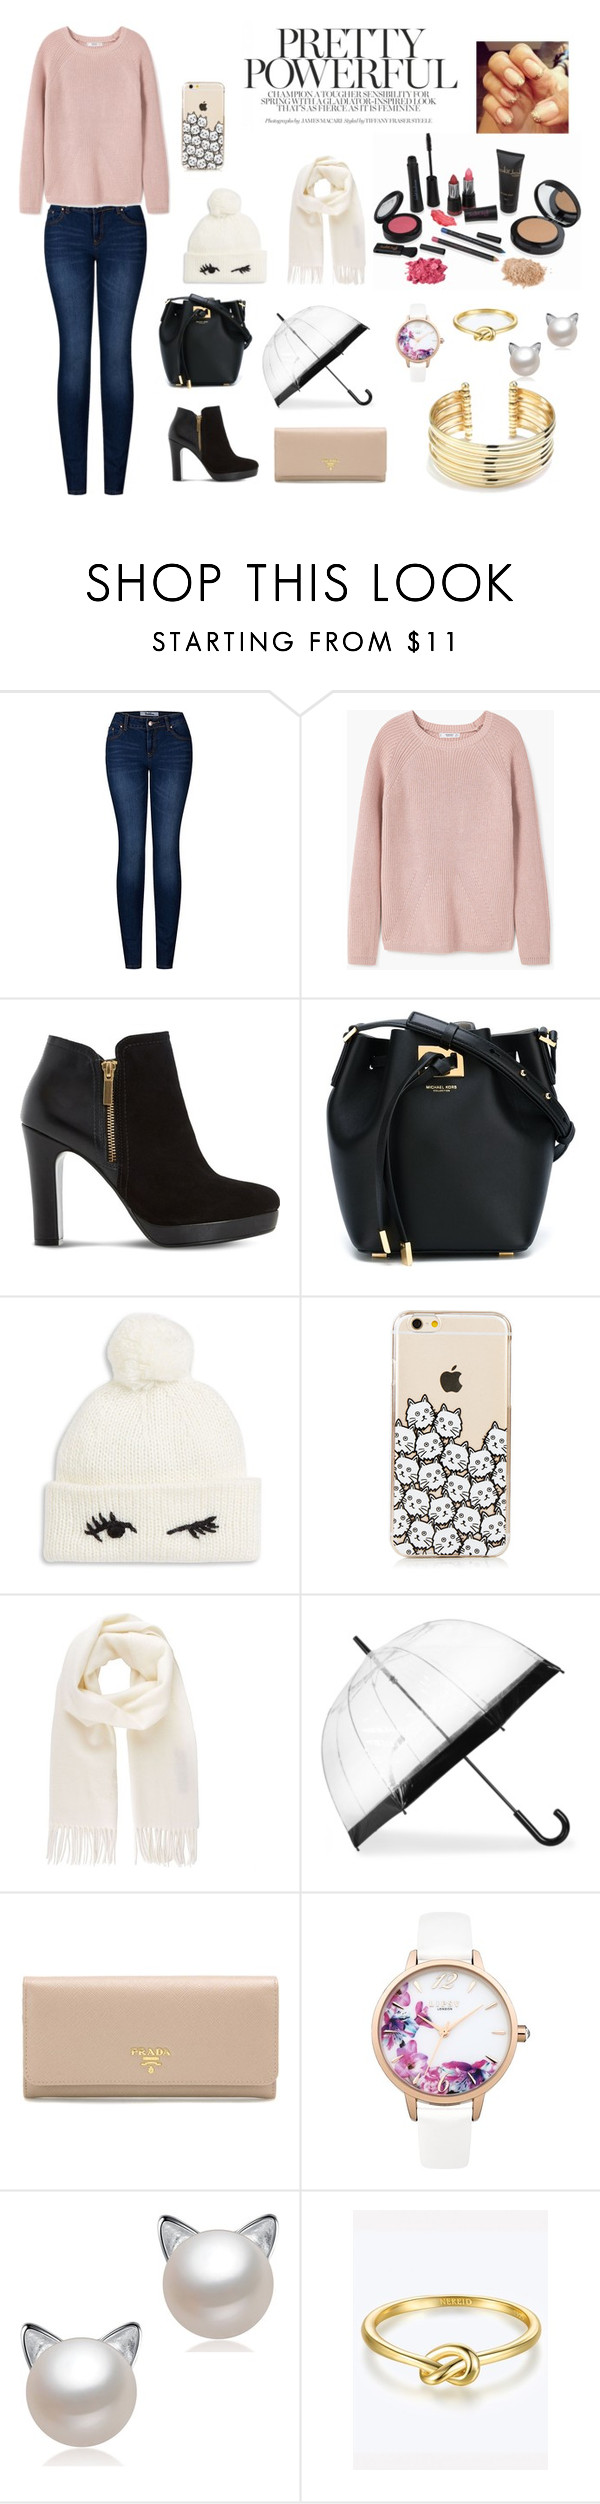 """Untitled #49"" by stylebyelisa ❤ liked on Polyvore featuring 2LUV, MANGO, Dune, Michael Kors, Kate Spade, Vivienne Westwood, Prada, Lipsy and Belk Silverworks"